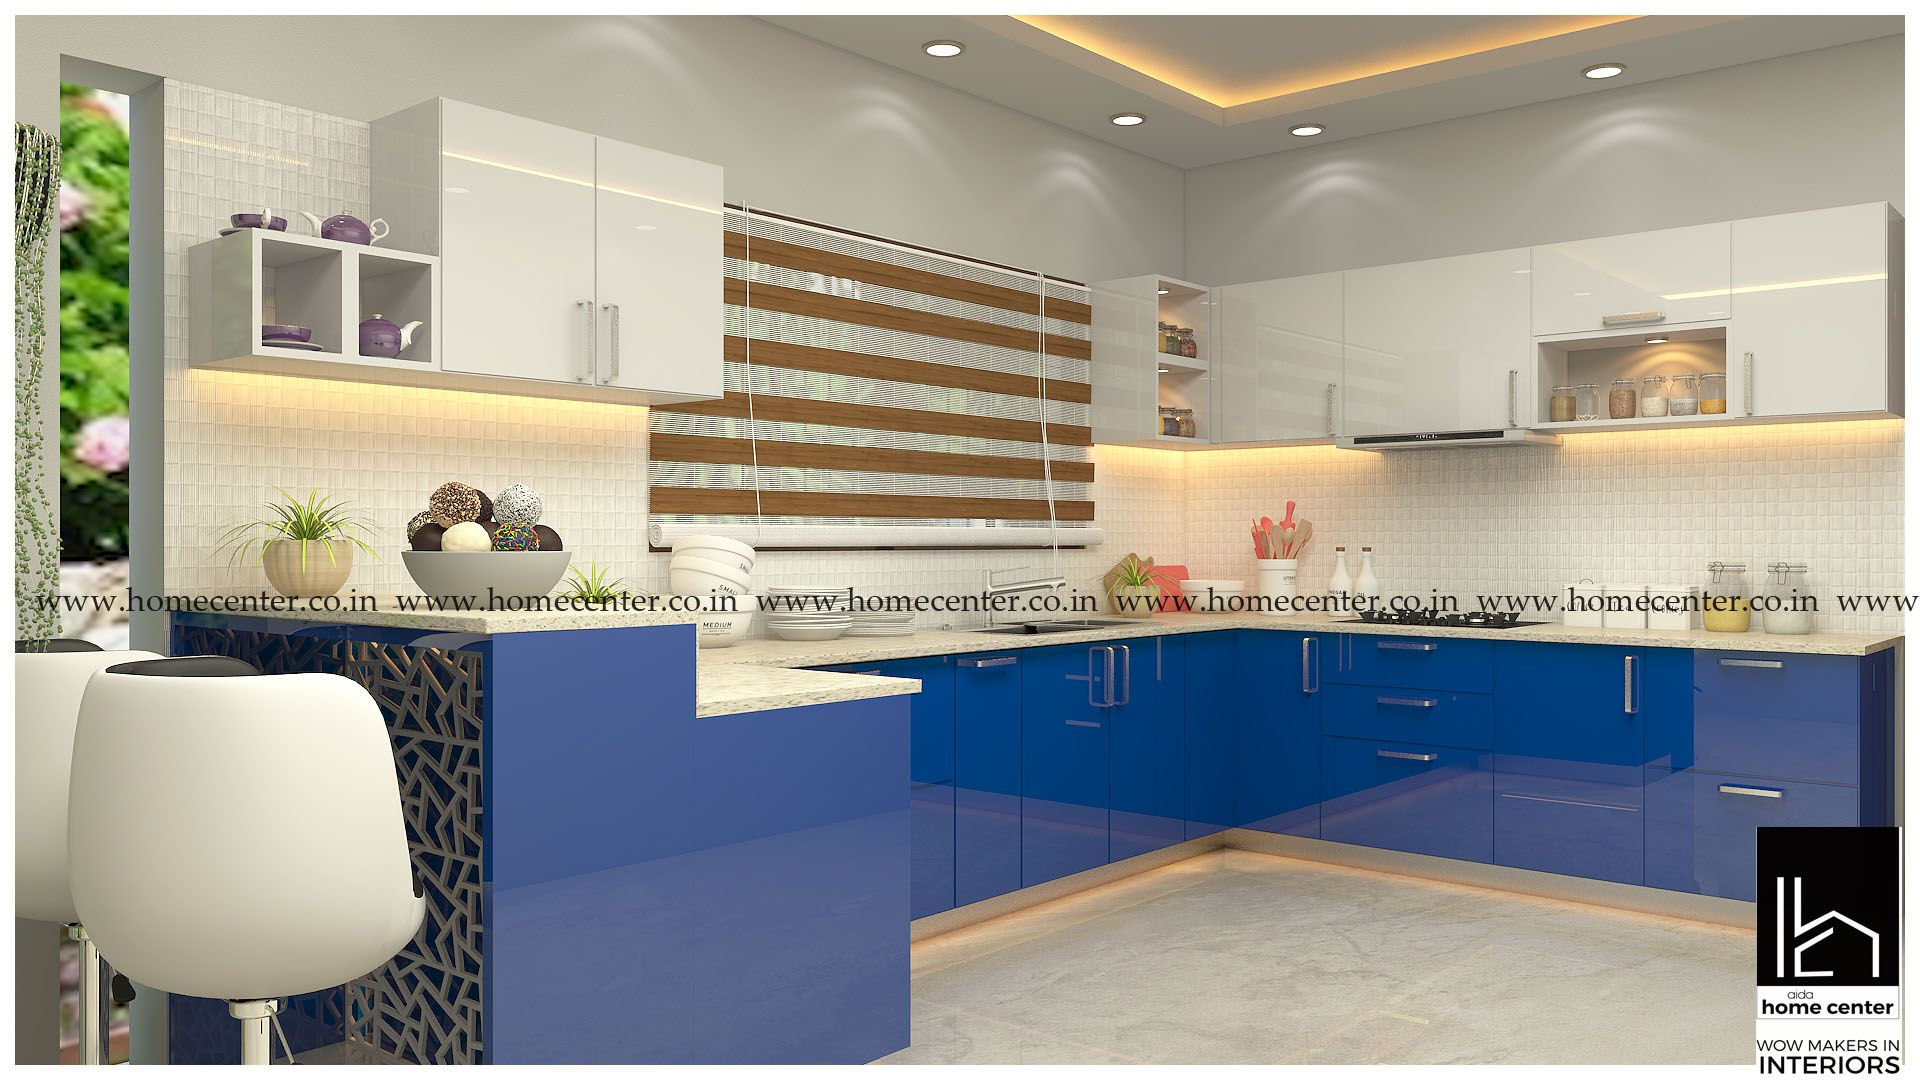 Home Center Interiors Best Interior Designers In Kottayam